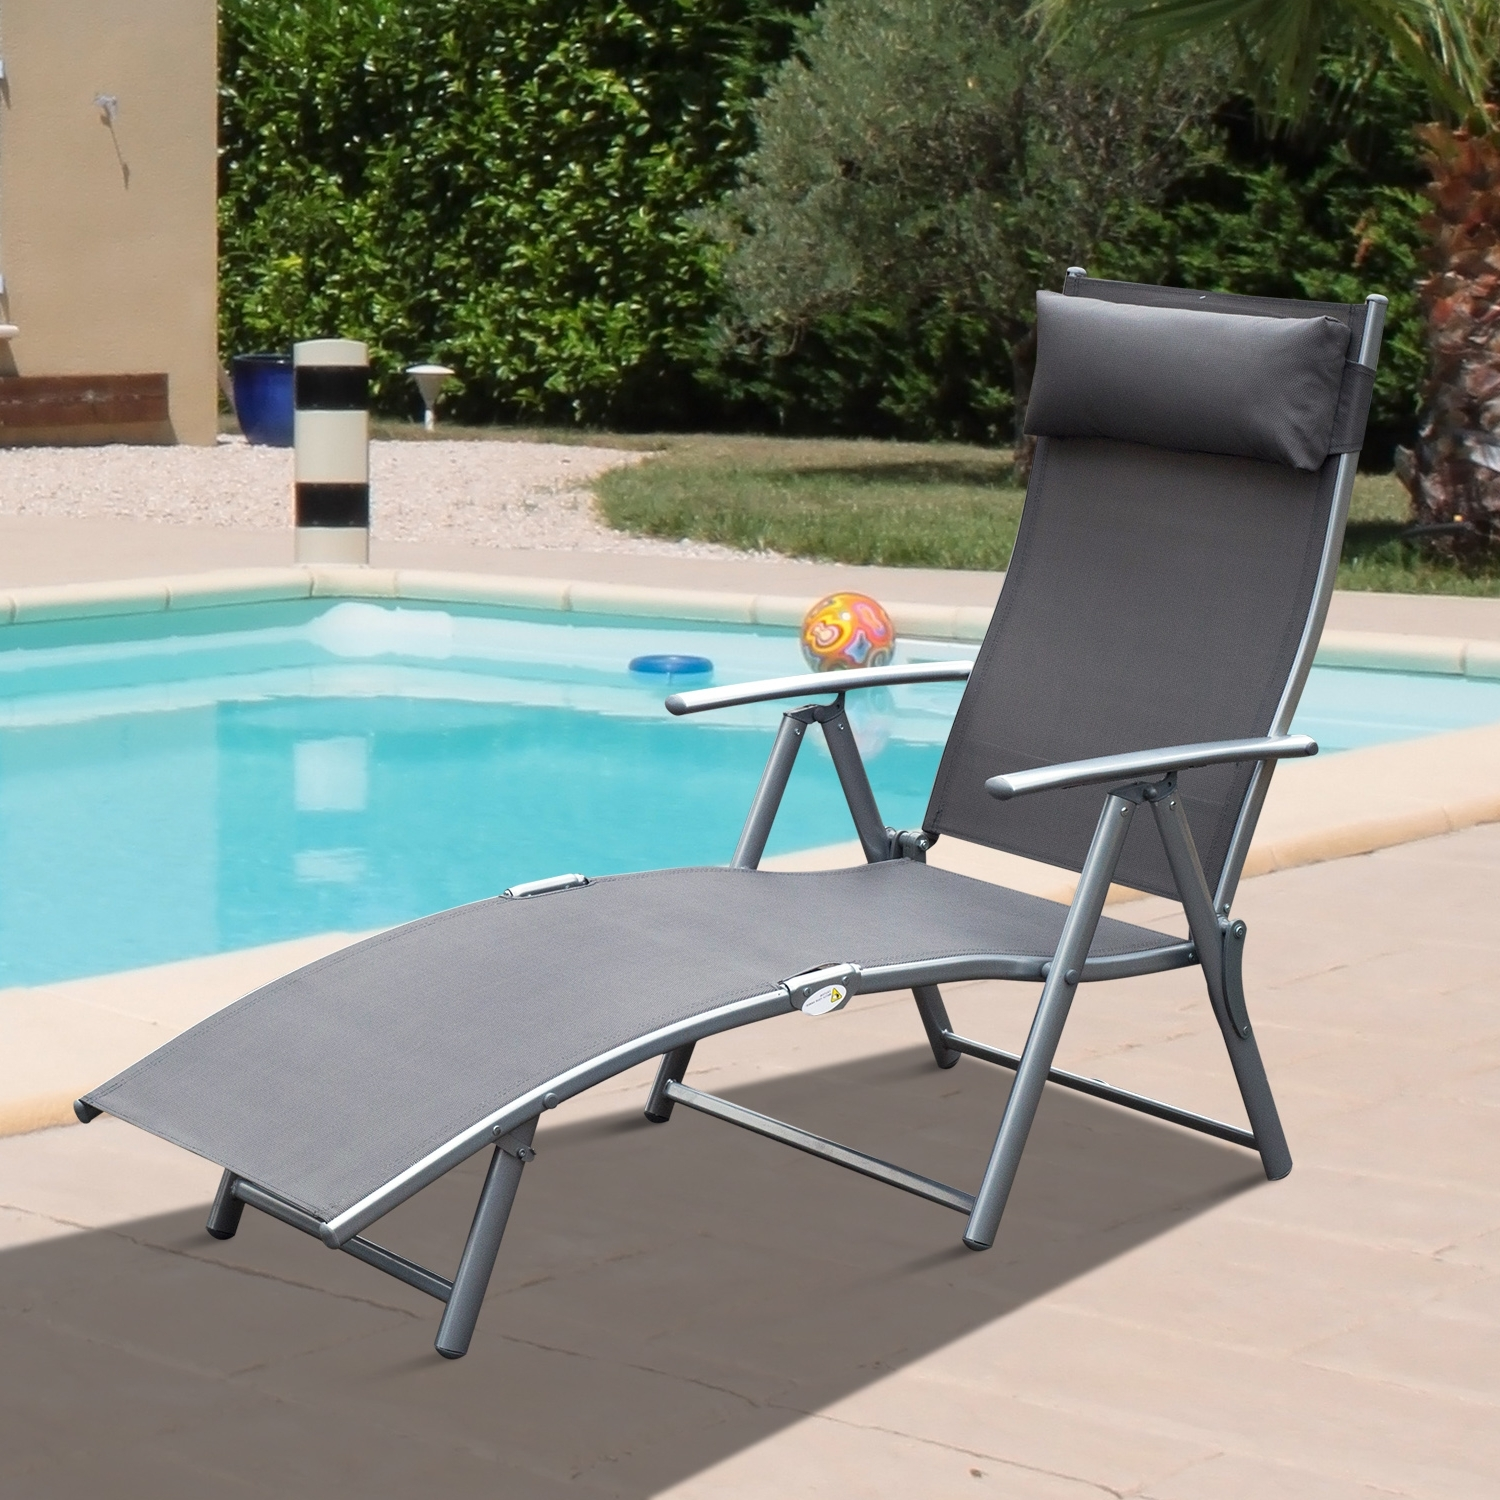 Most Current Chaise Lounge Chair Folding Pool Beach Yard Adjustable Patio Throughout Adjustable Pool Chaise Lounge Chair Recliners (View 7 of 15)